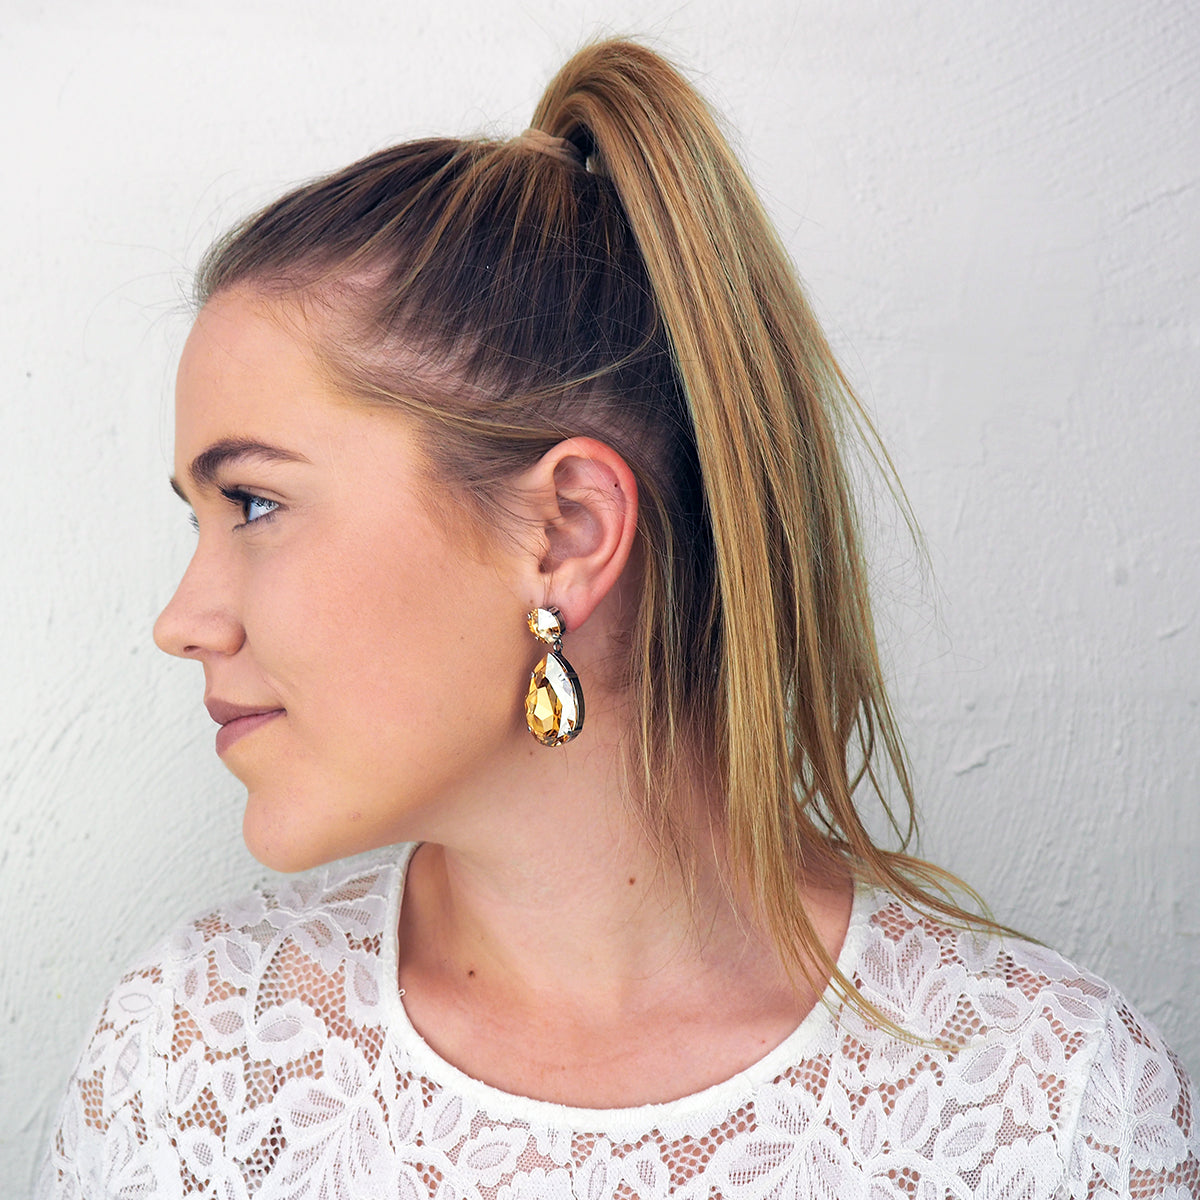 Starstruck Earrings - Golden Shadow